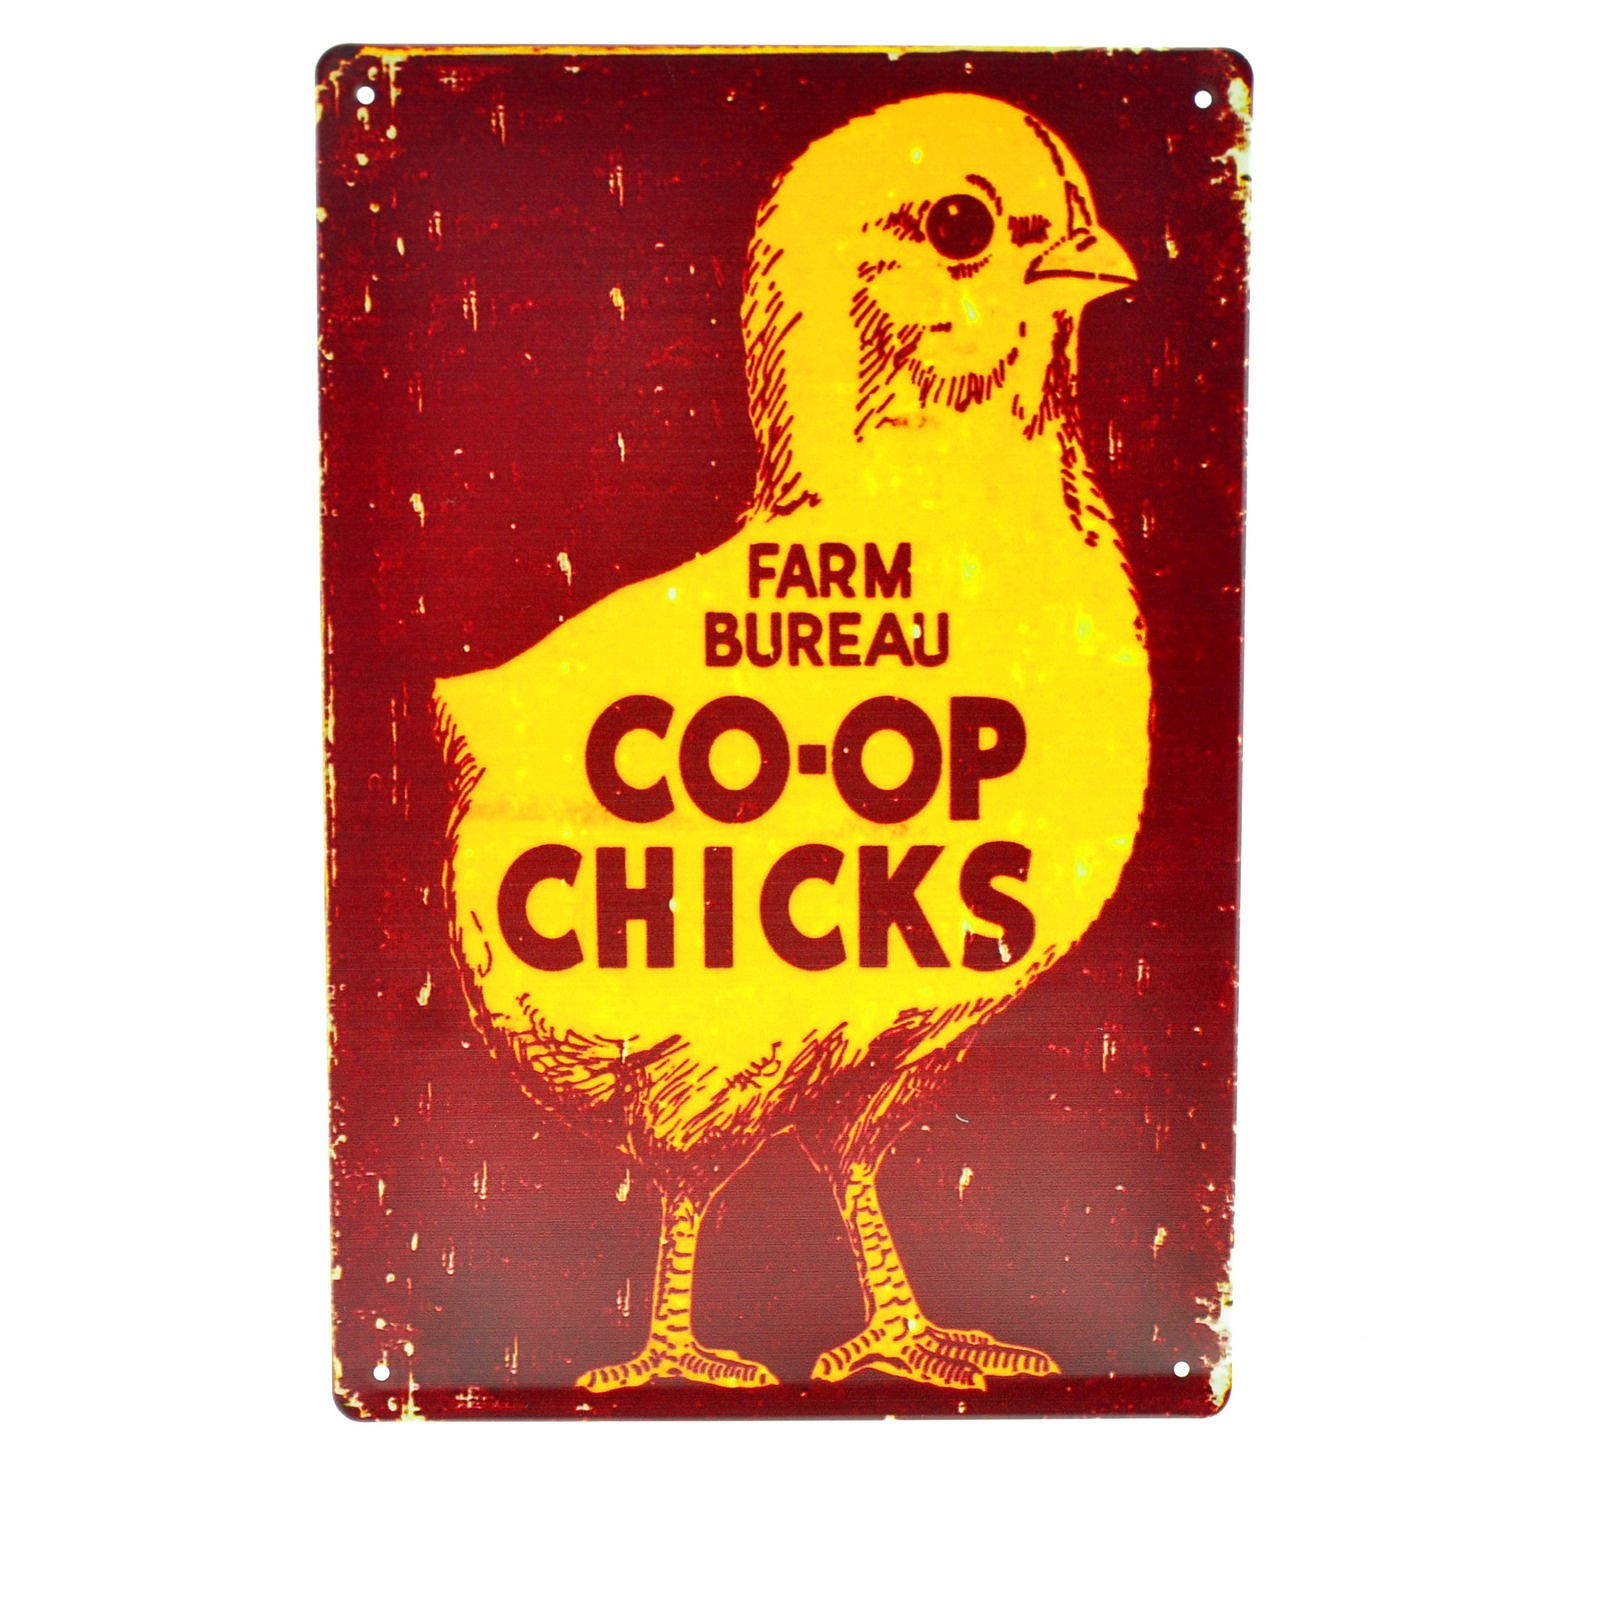 Cartel Metálico de Coop Chicks